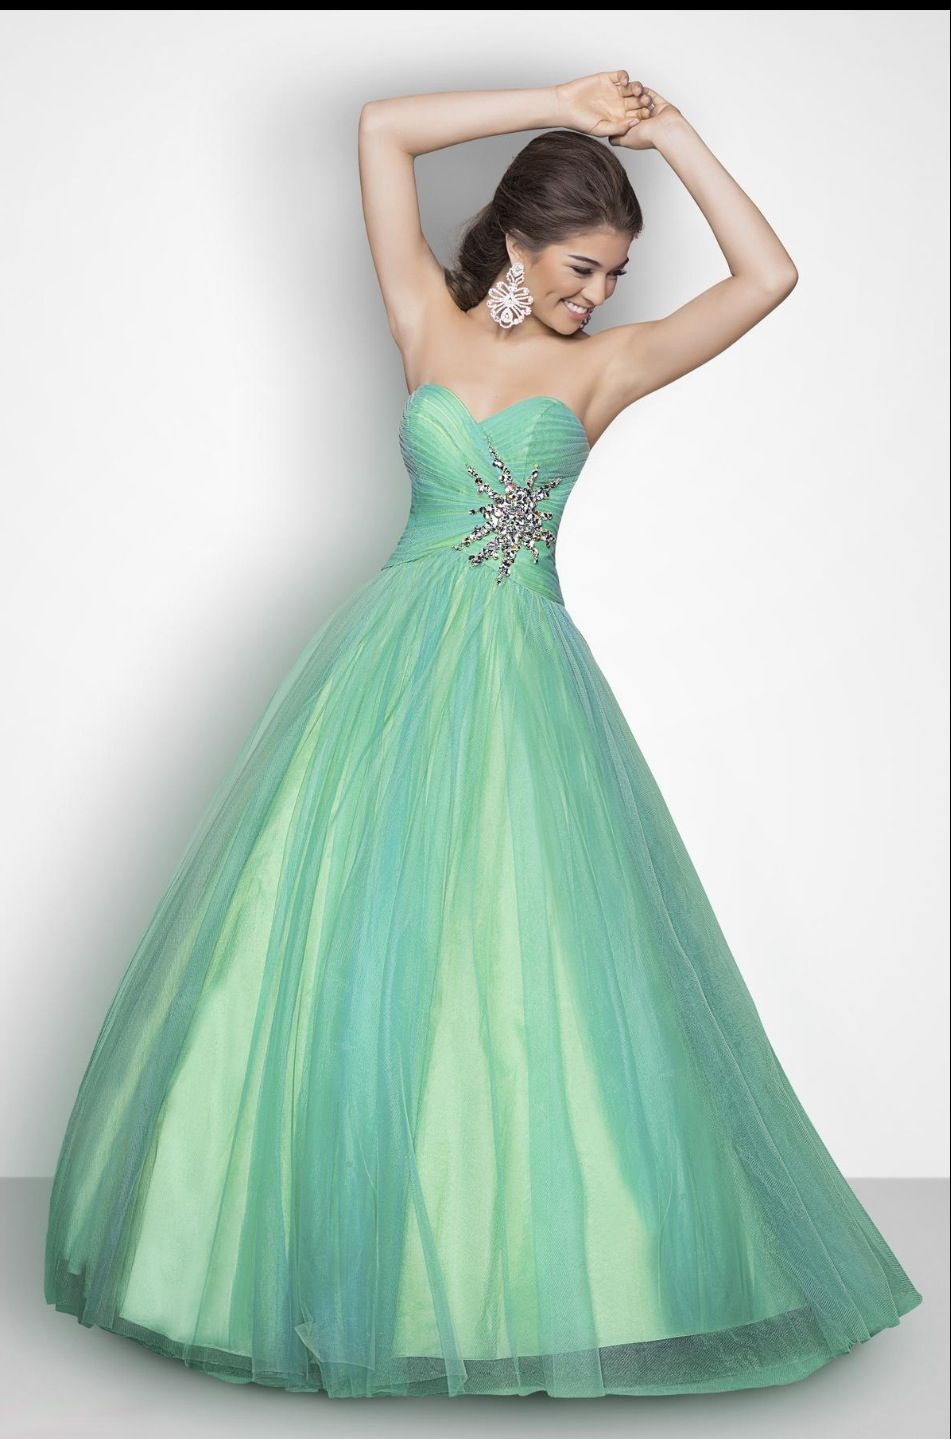 Pin by Lexi Lee on If I ever go to prom | Pinterest | Prom